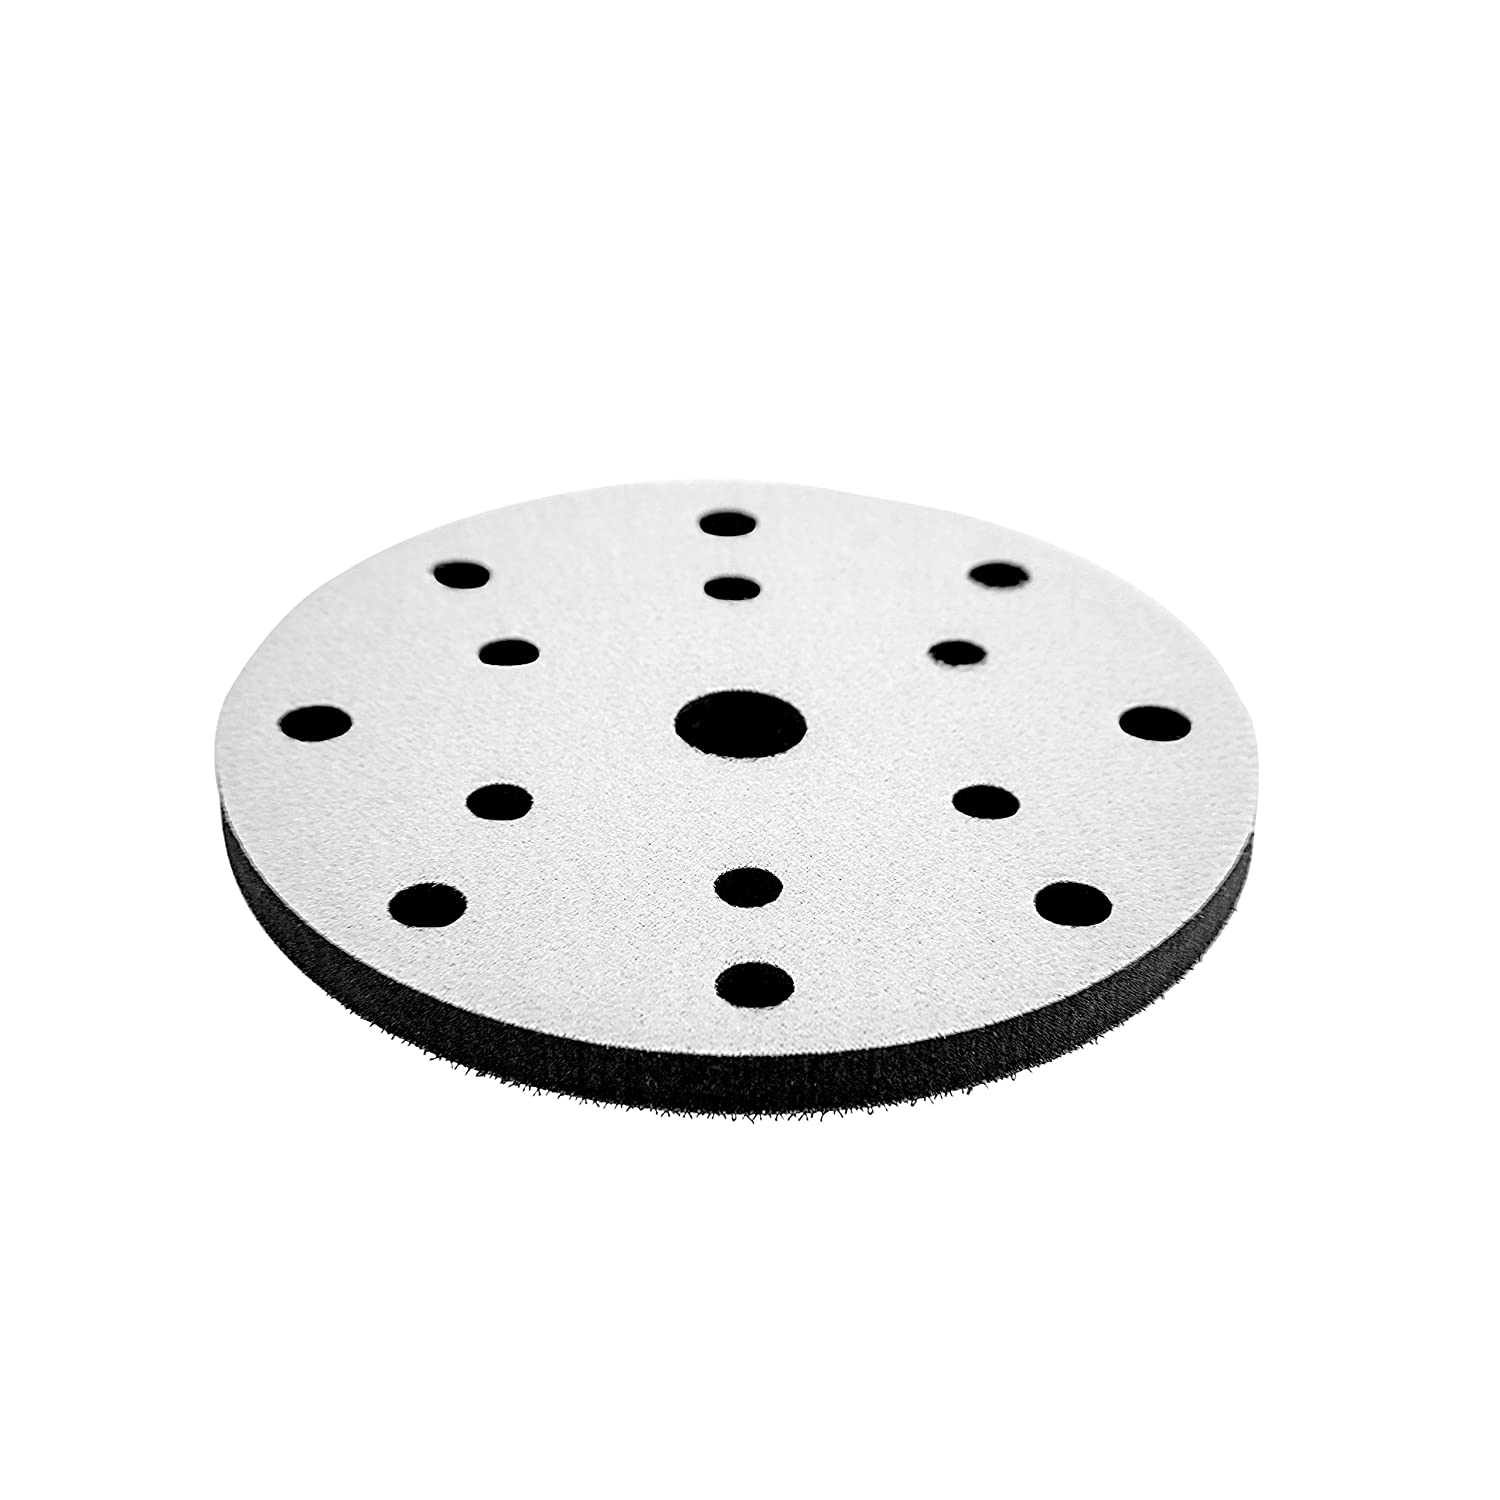 Changzhou Super Commercial/&Industry Co Ltd CHEN REFINISH Premium Quality 10mm Think Double Sided DA Polisher and Sander Interface Pad No Hole, 5 Inch